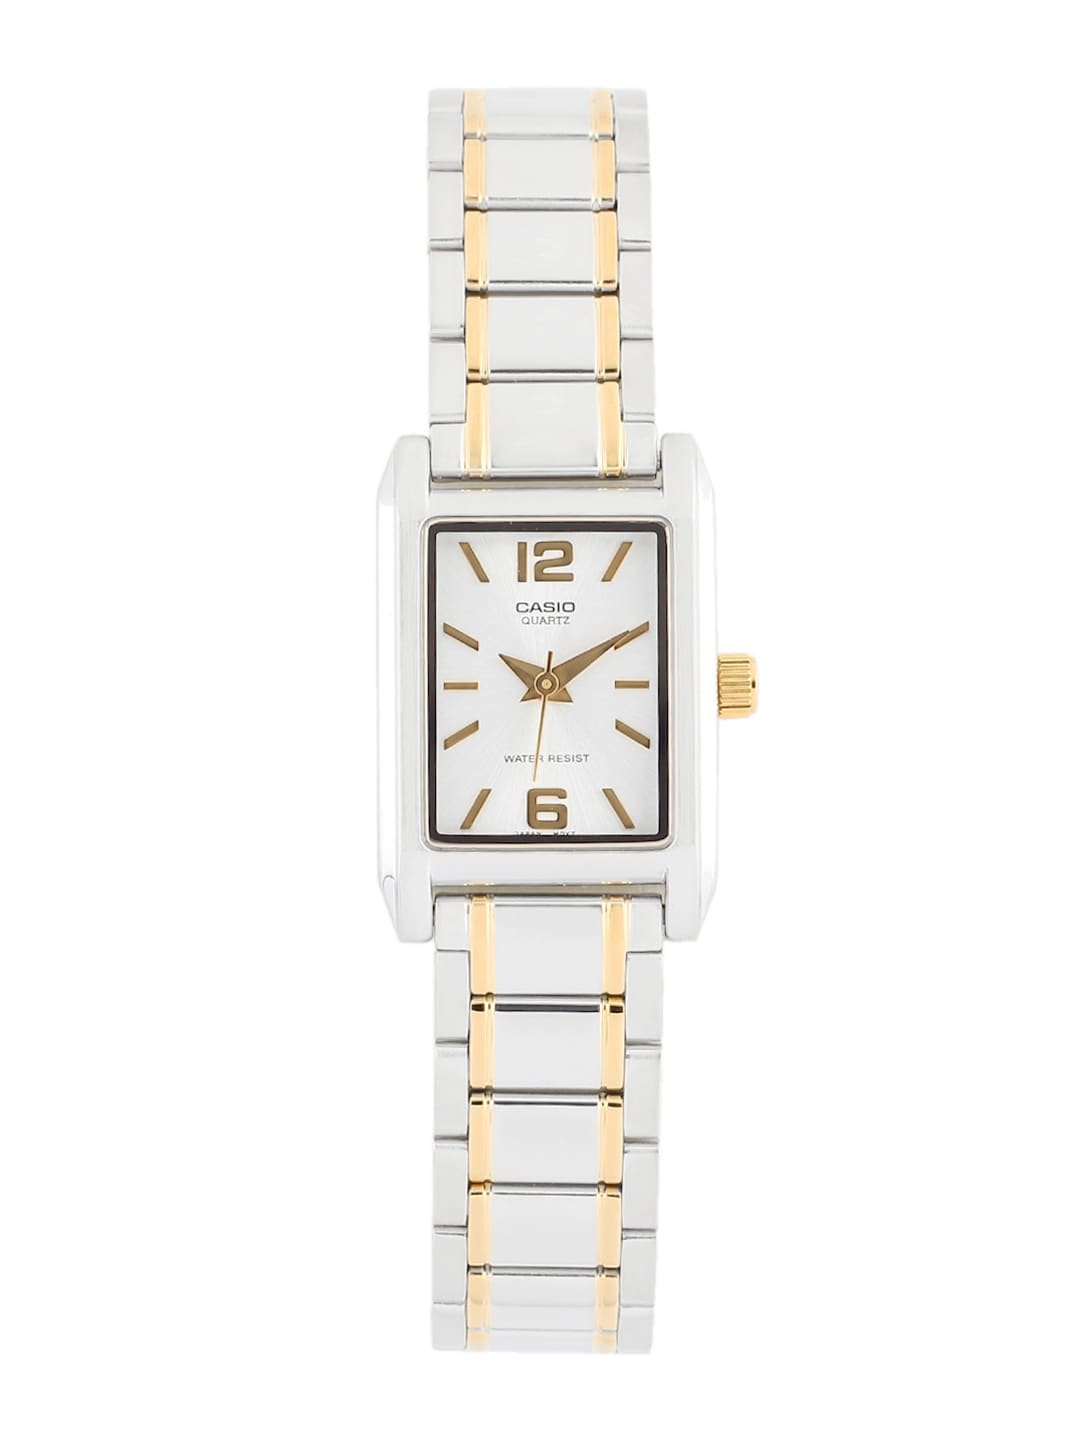 CASIO Women Silver-Toned Dial Watch A360